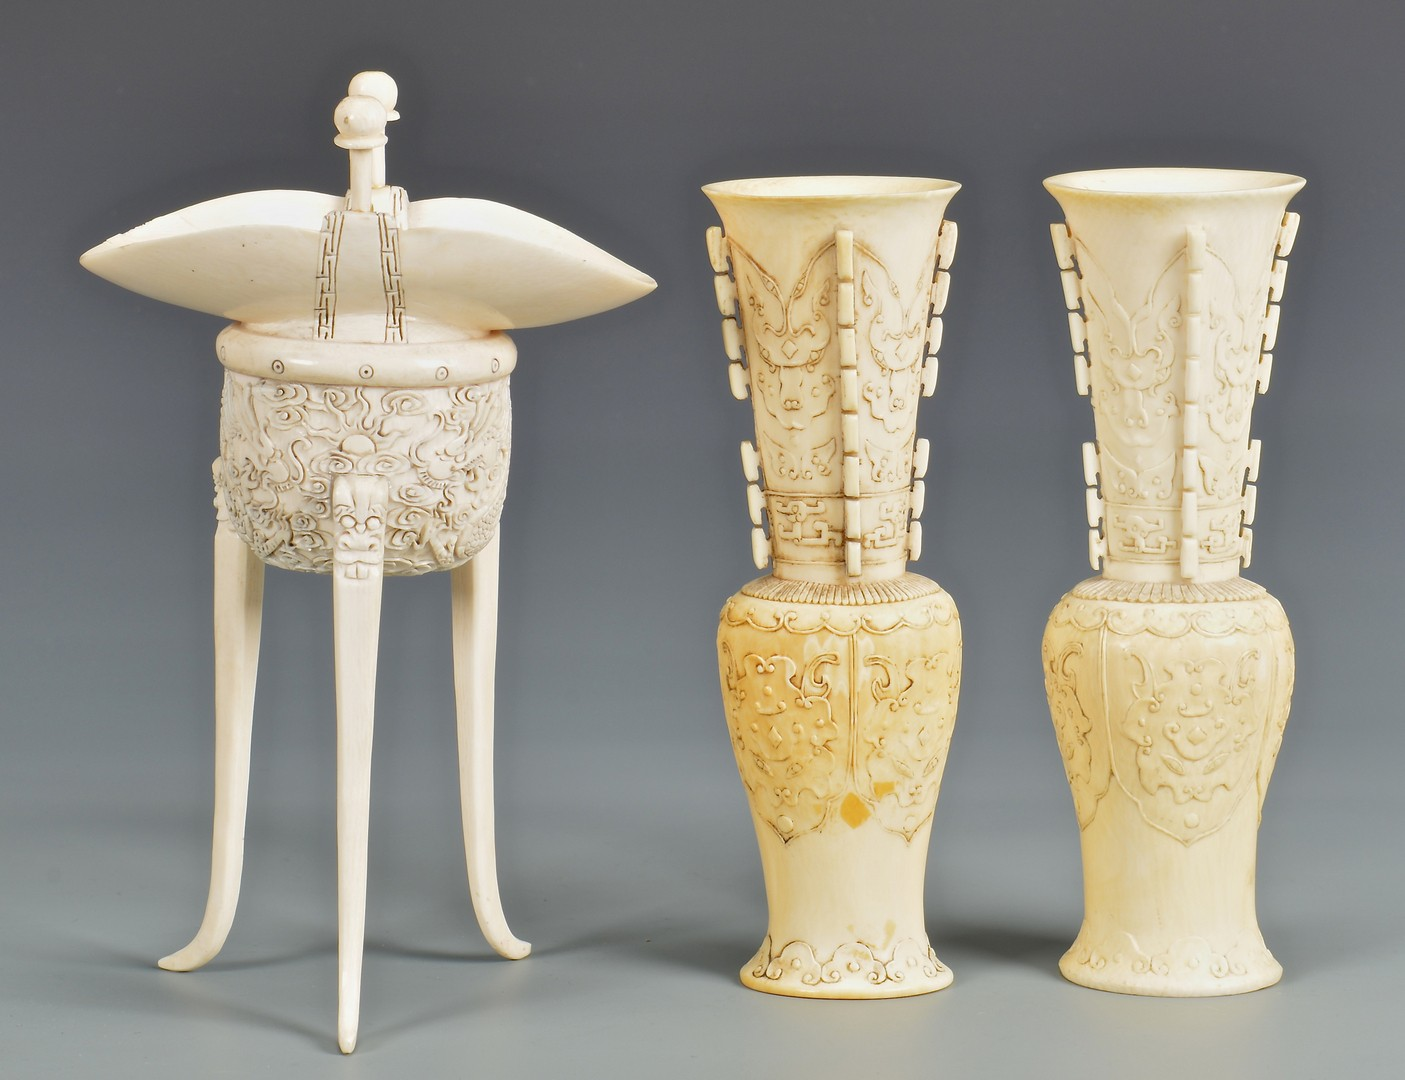 Lot 4010101: 5 Chinese Carved Ivory Decorative Items